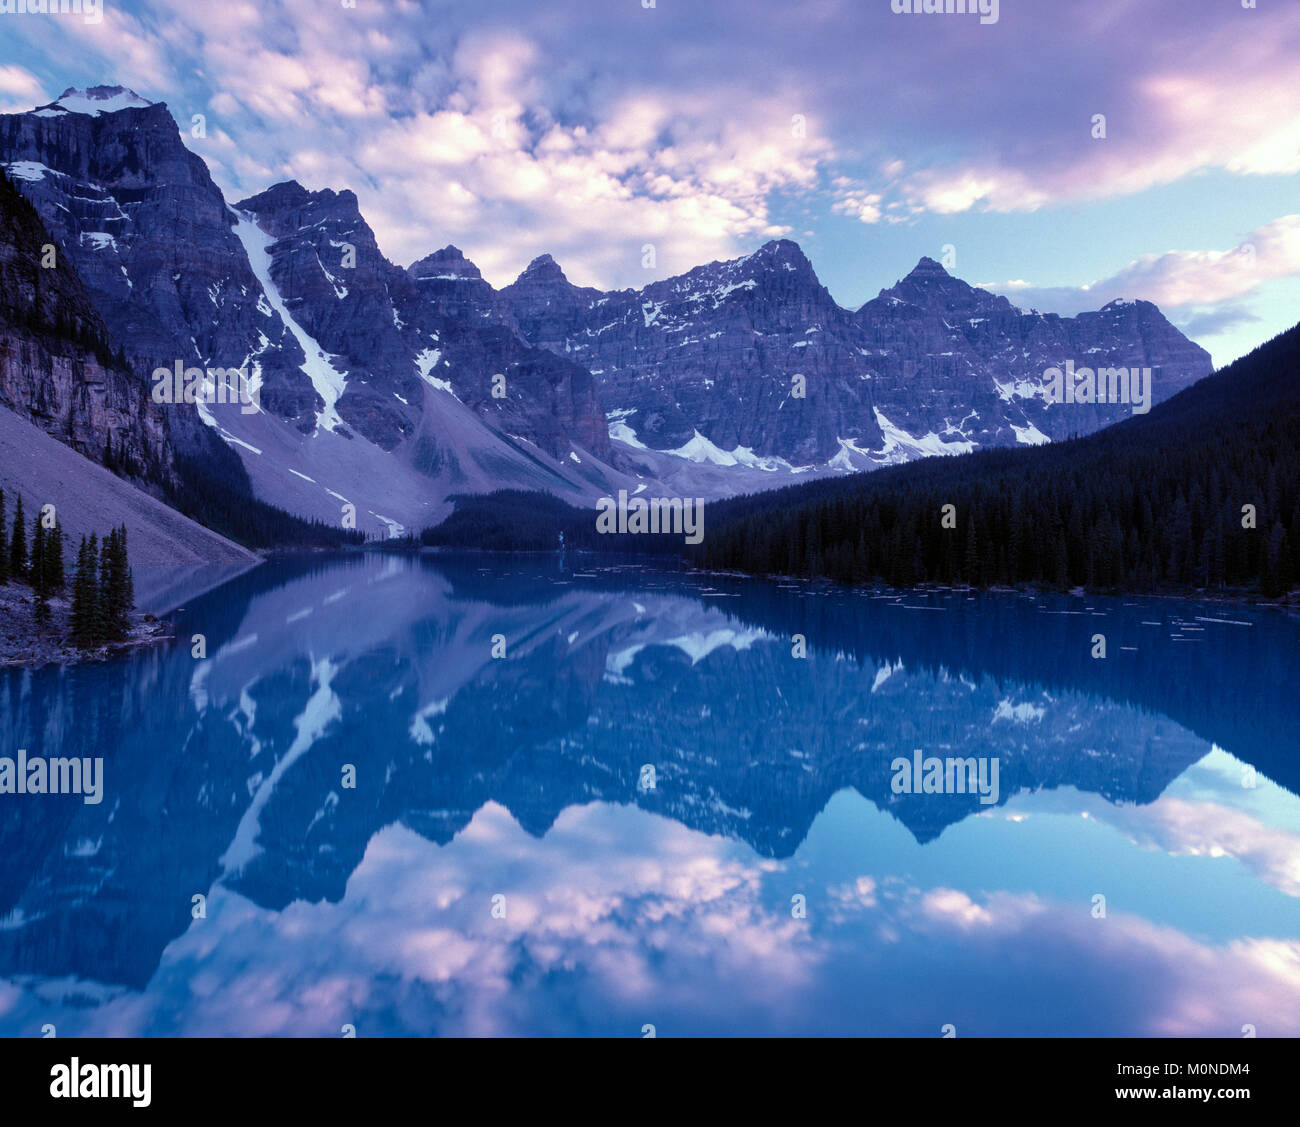 Moraine Lake, Canadian Rockies, Banff National Park, Alberta, Canada - Stock Image